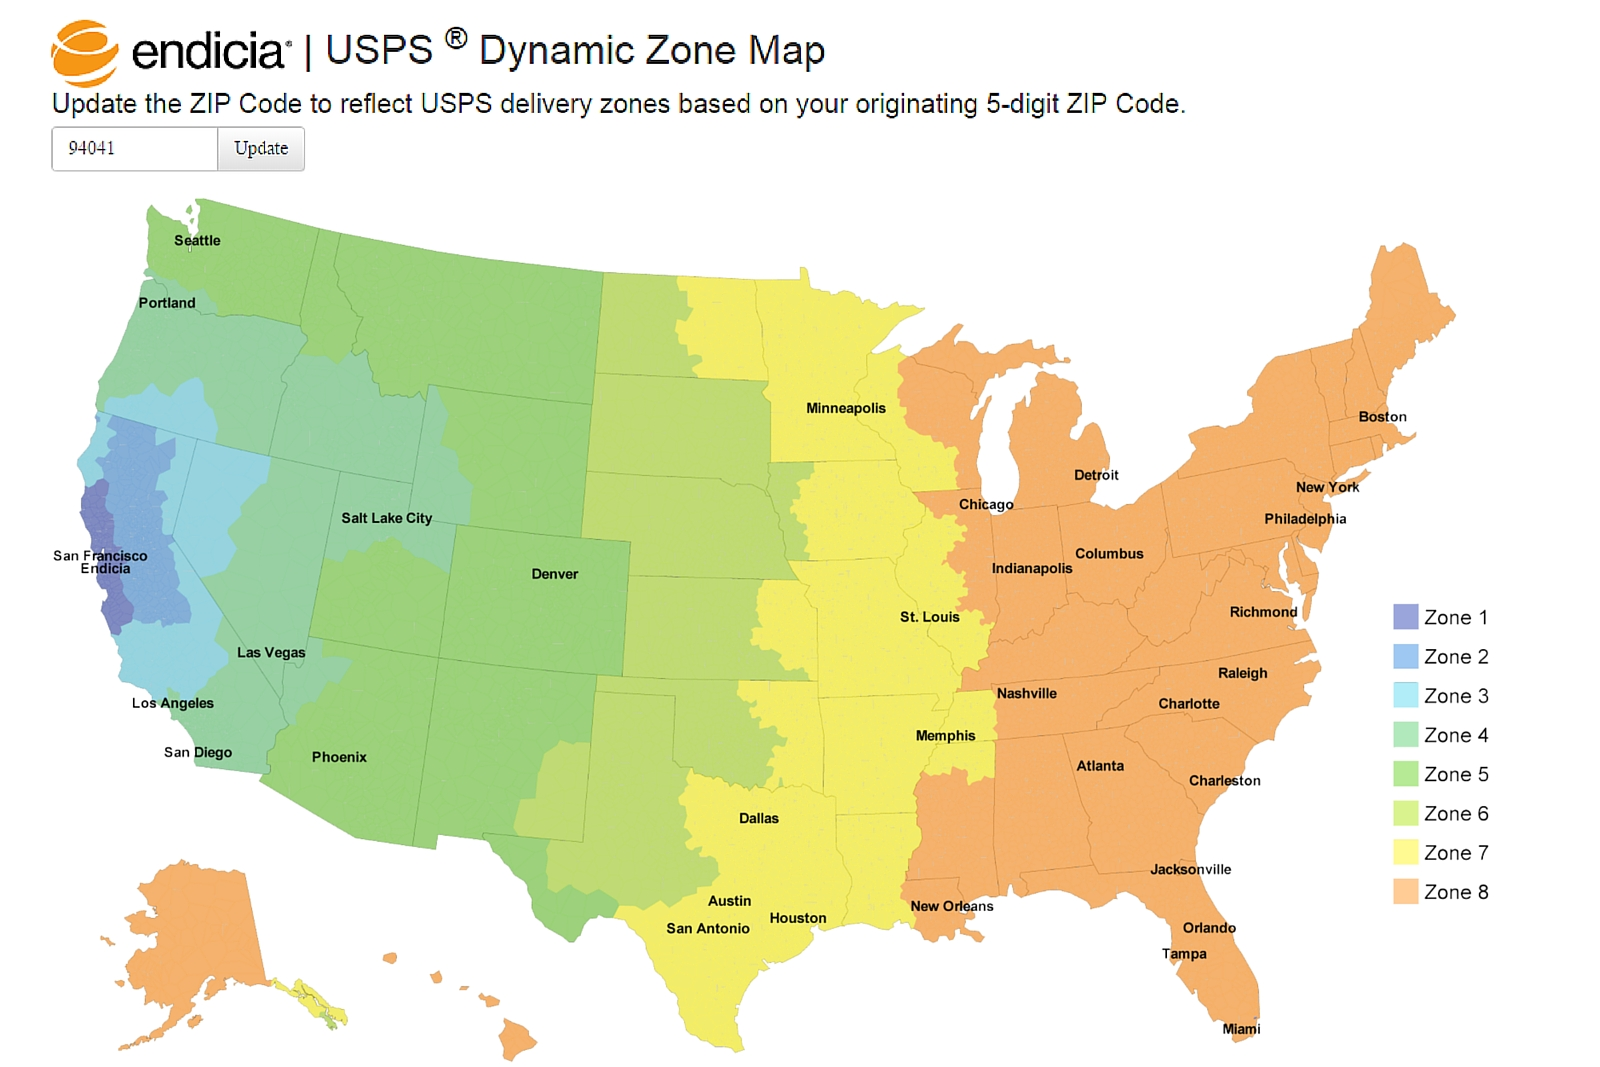 Endicias Dynamic Zone Map Takes The Guesswork Out Of Delivery - Us postal zone map